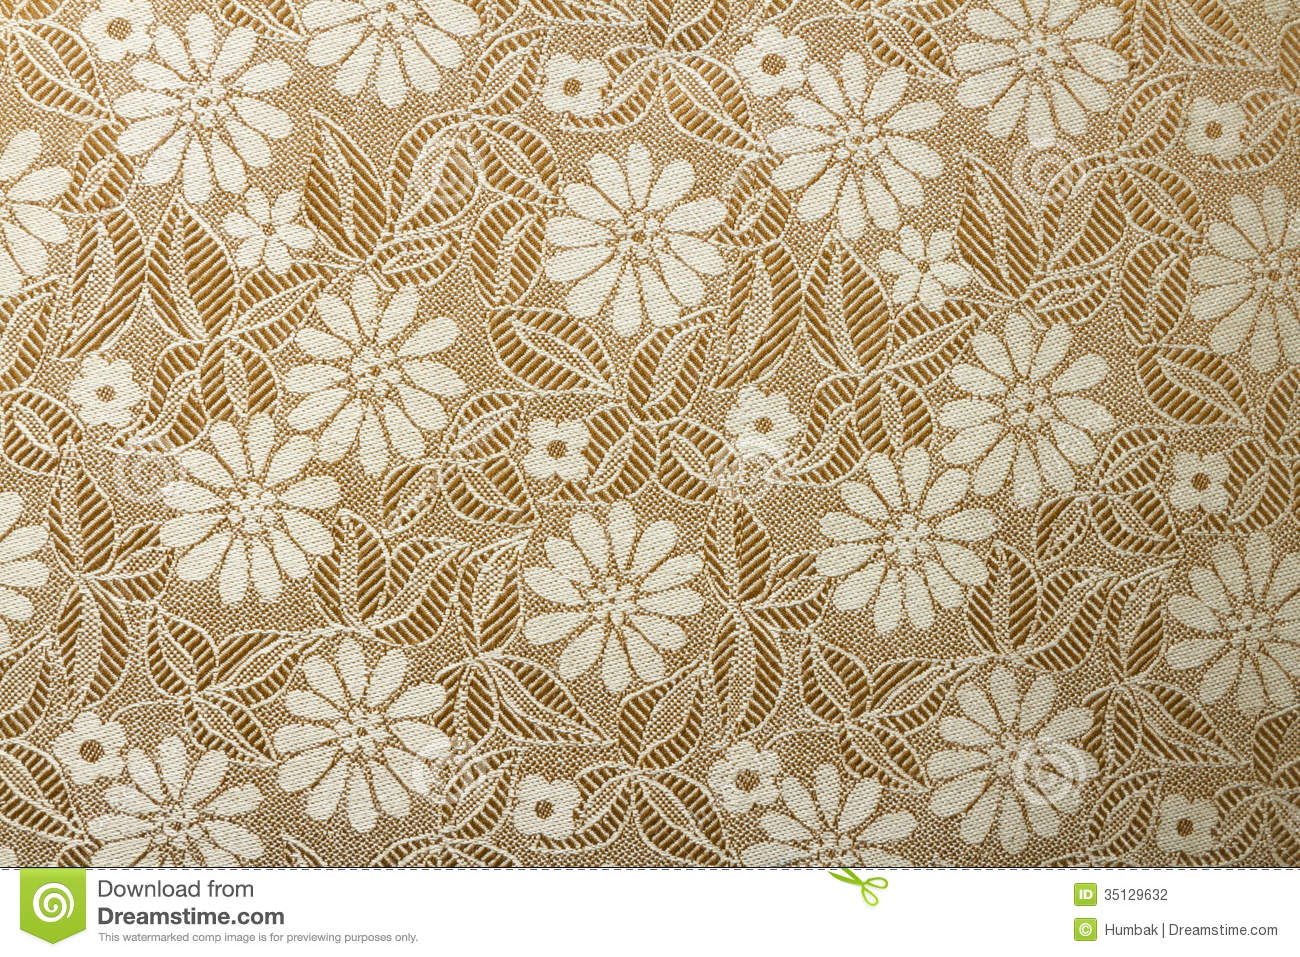 Fabric Wall Paper : Fabric wallpaper stock photo image of floral vintage